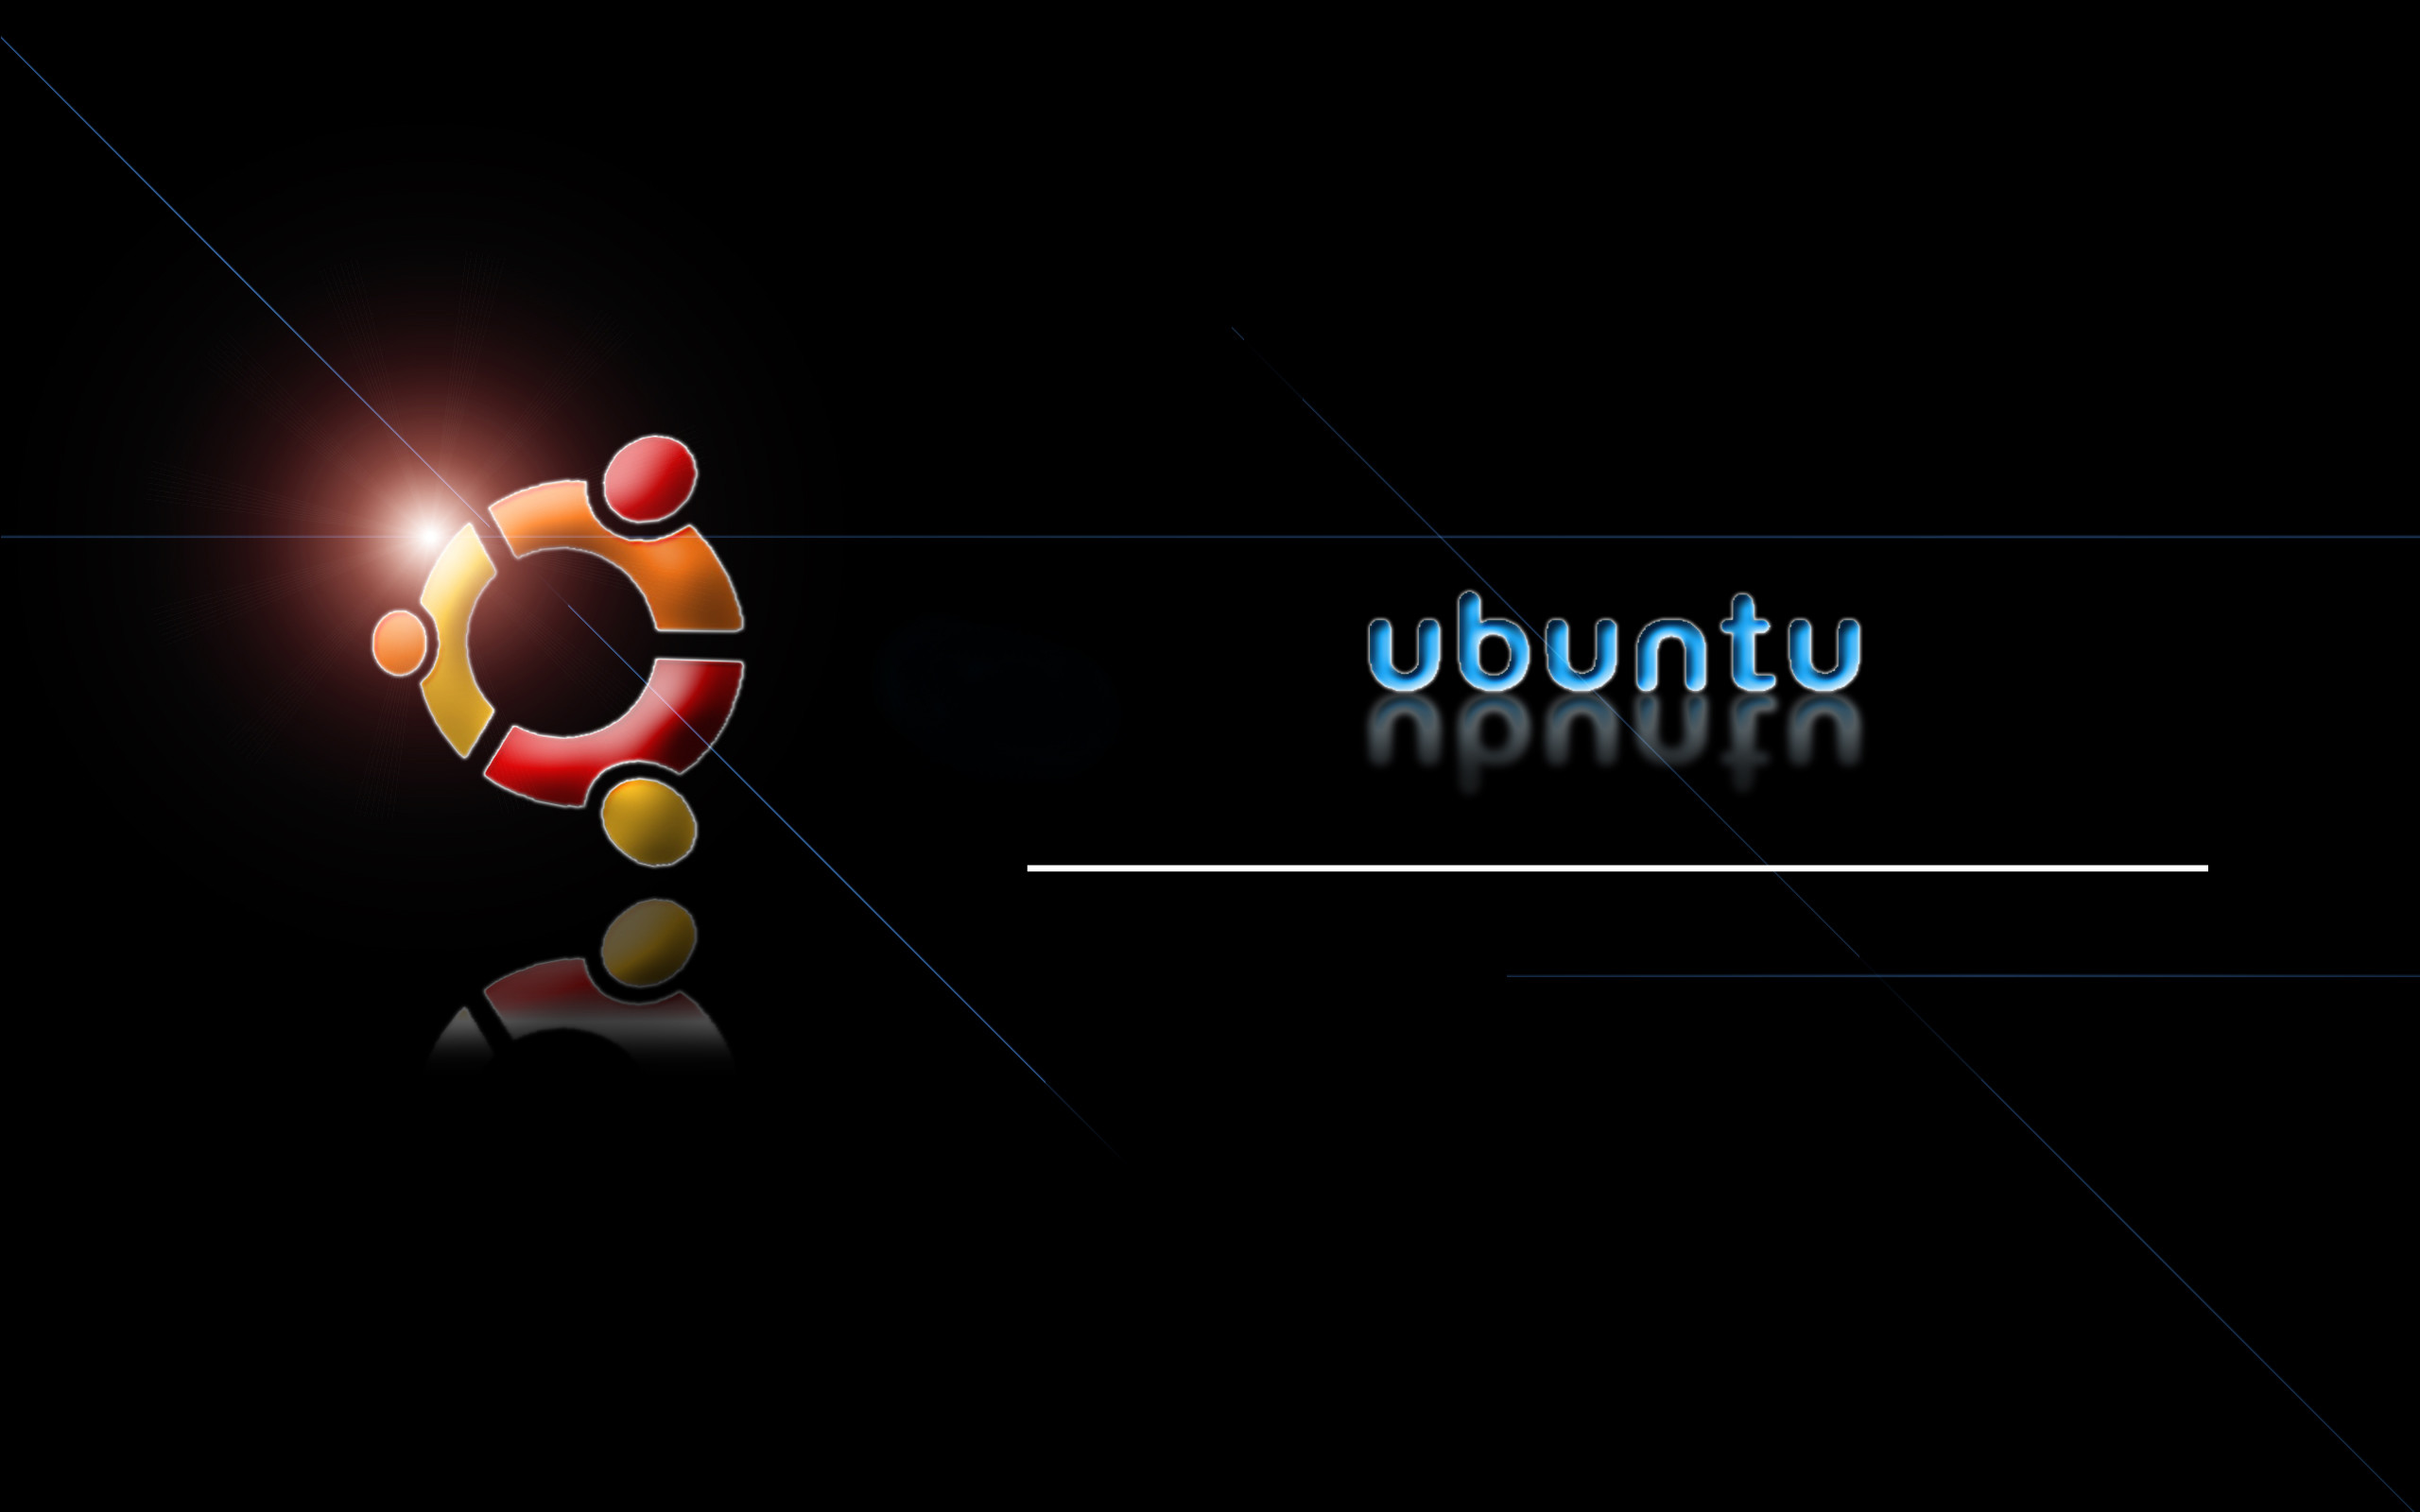 Linux Wallpapers Ubuntu Wallpaper, Desktop, Hd, Free - Wallpaper -  2560x1600 - Download HD Wallpaper - WallpaperTip